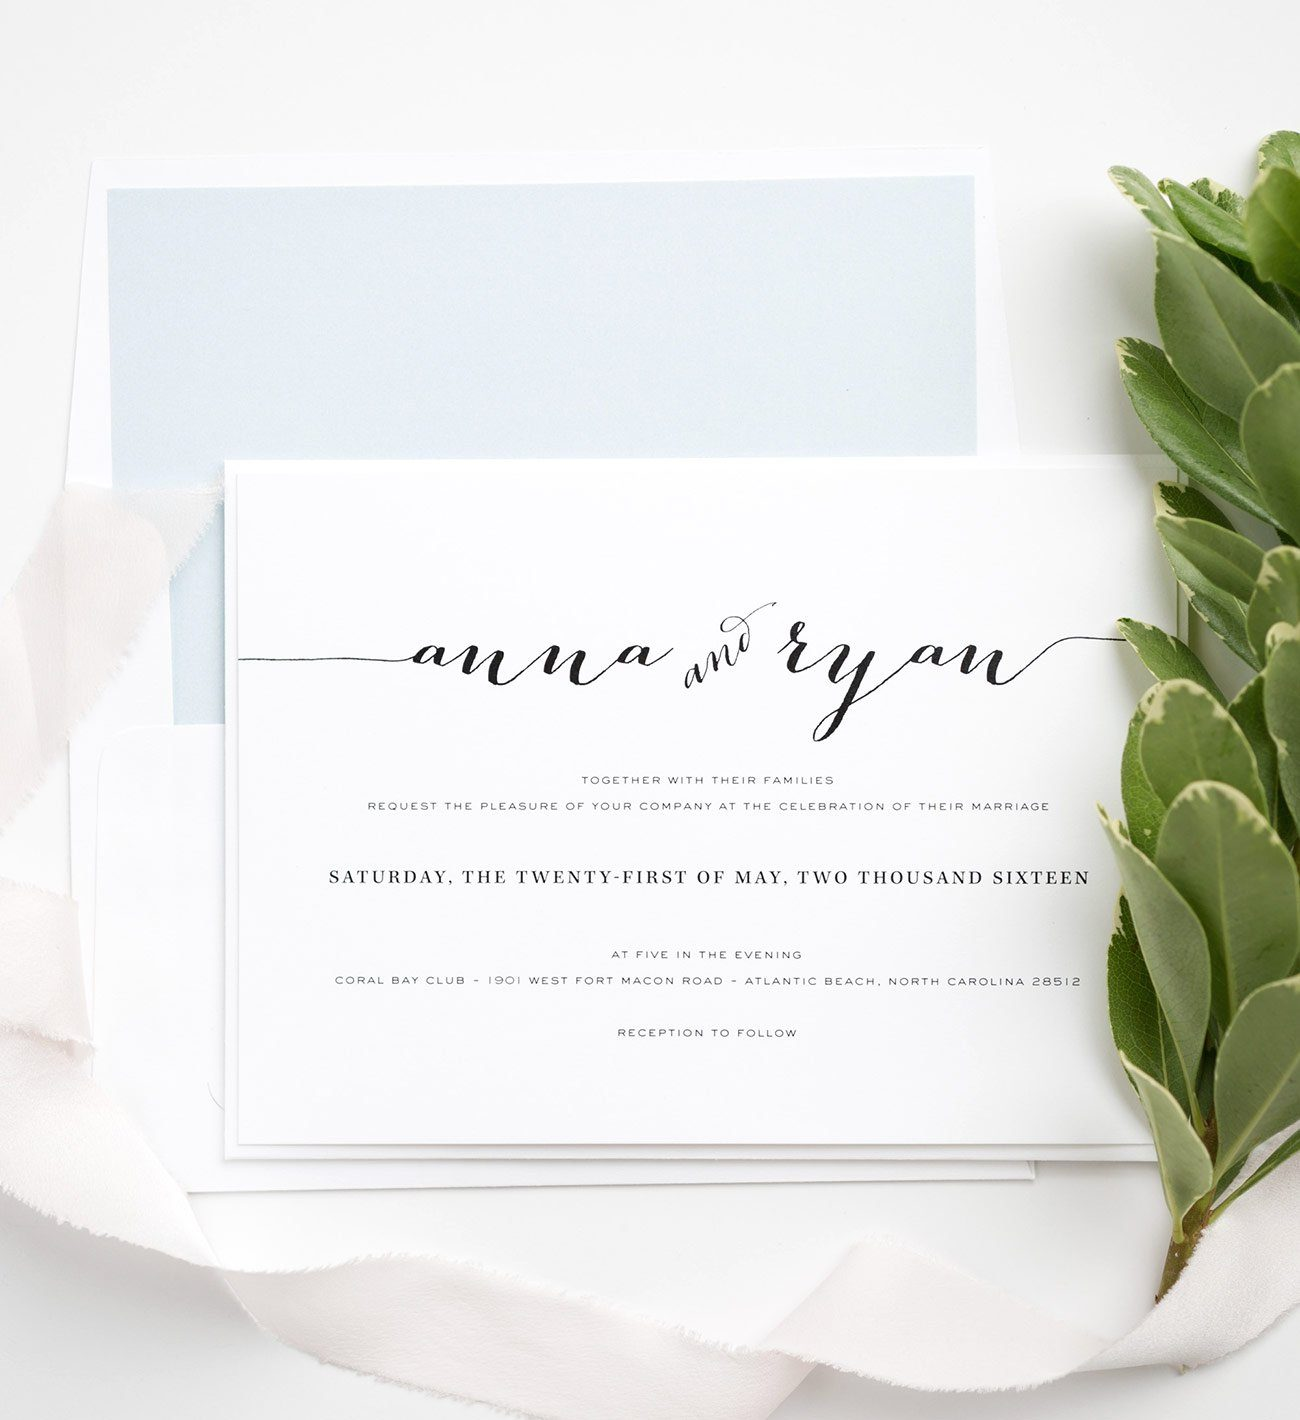 Calligraphy Wedding Invitations in Light Blue